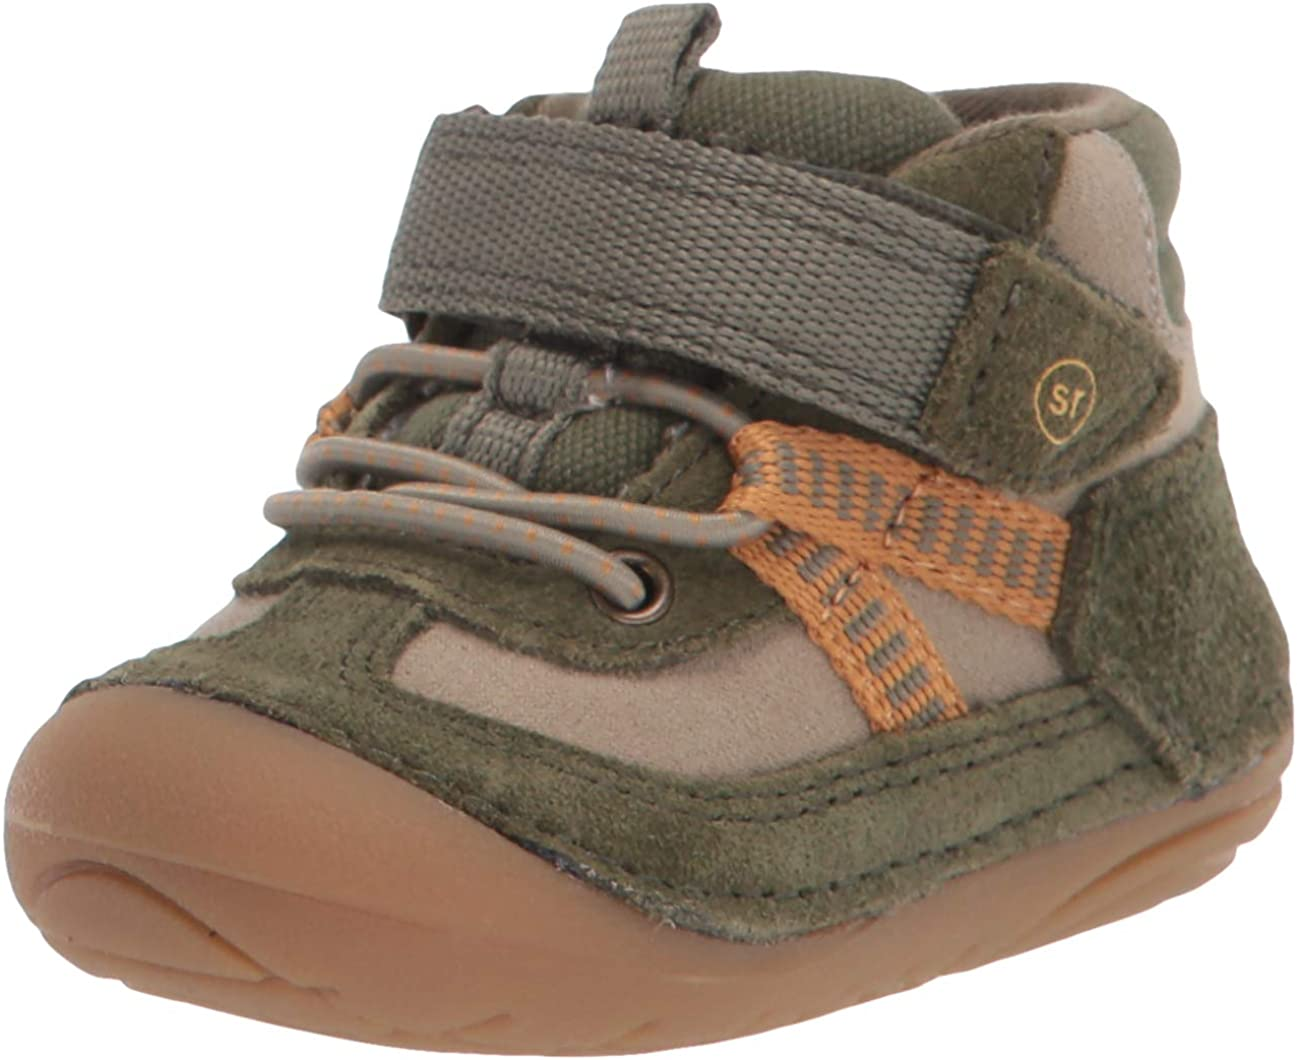 Direct stock discount Stride In a popularity Rite Kids' Soft Fashion Atticus Boot Motion